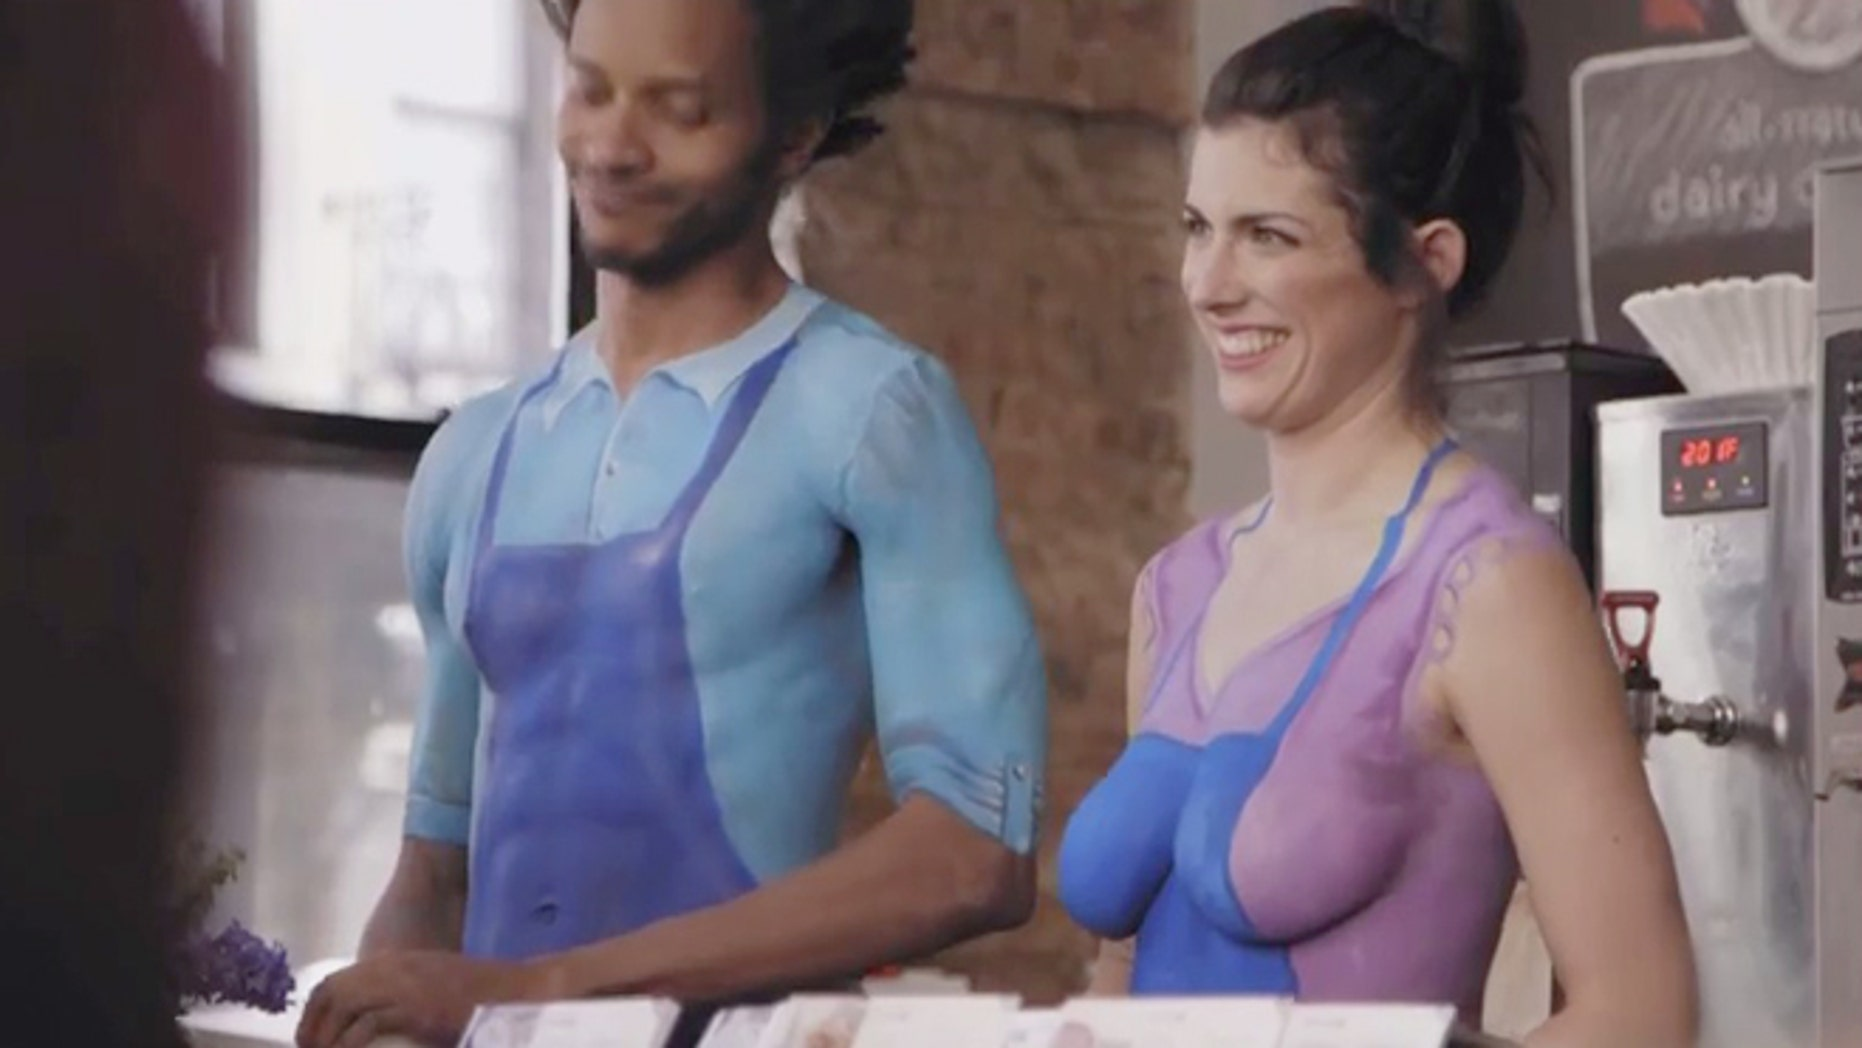 Naked baristas serve surprised patrons coffee in Nestle's new commercial.